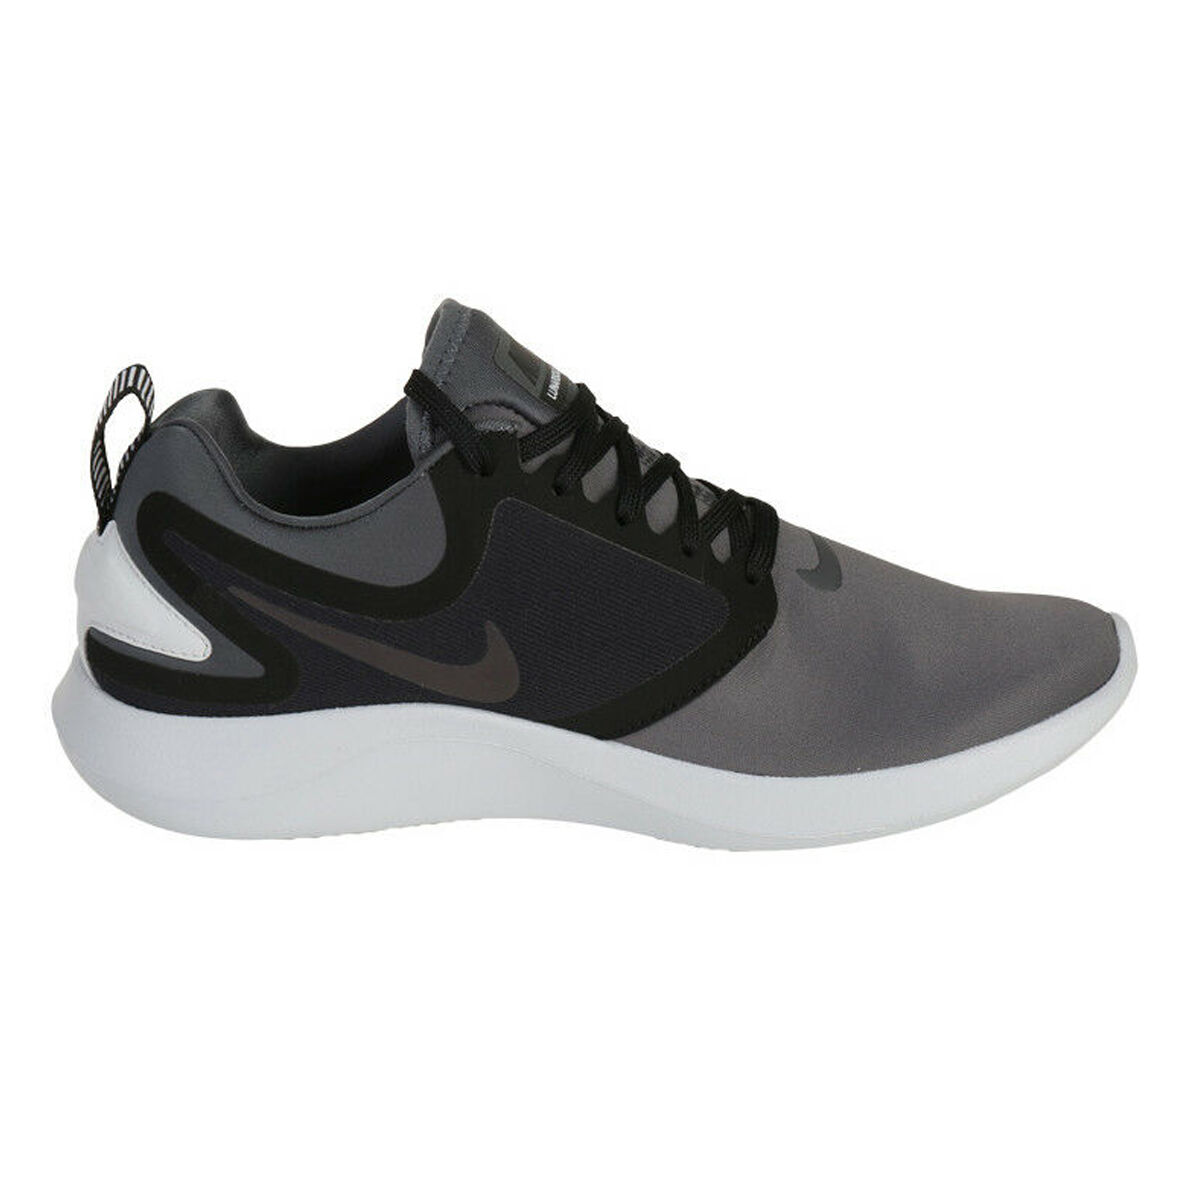 Nike LunarSolo Mens Running Shoes Black Grey US 7